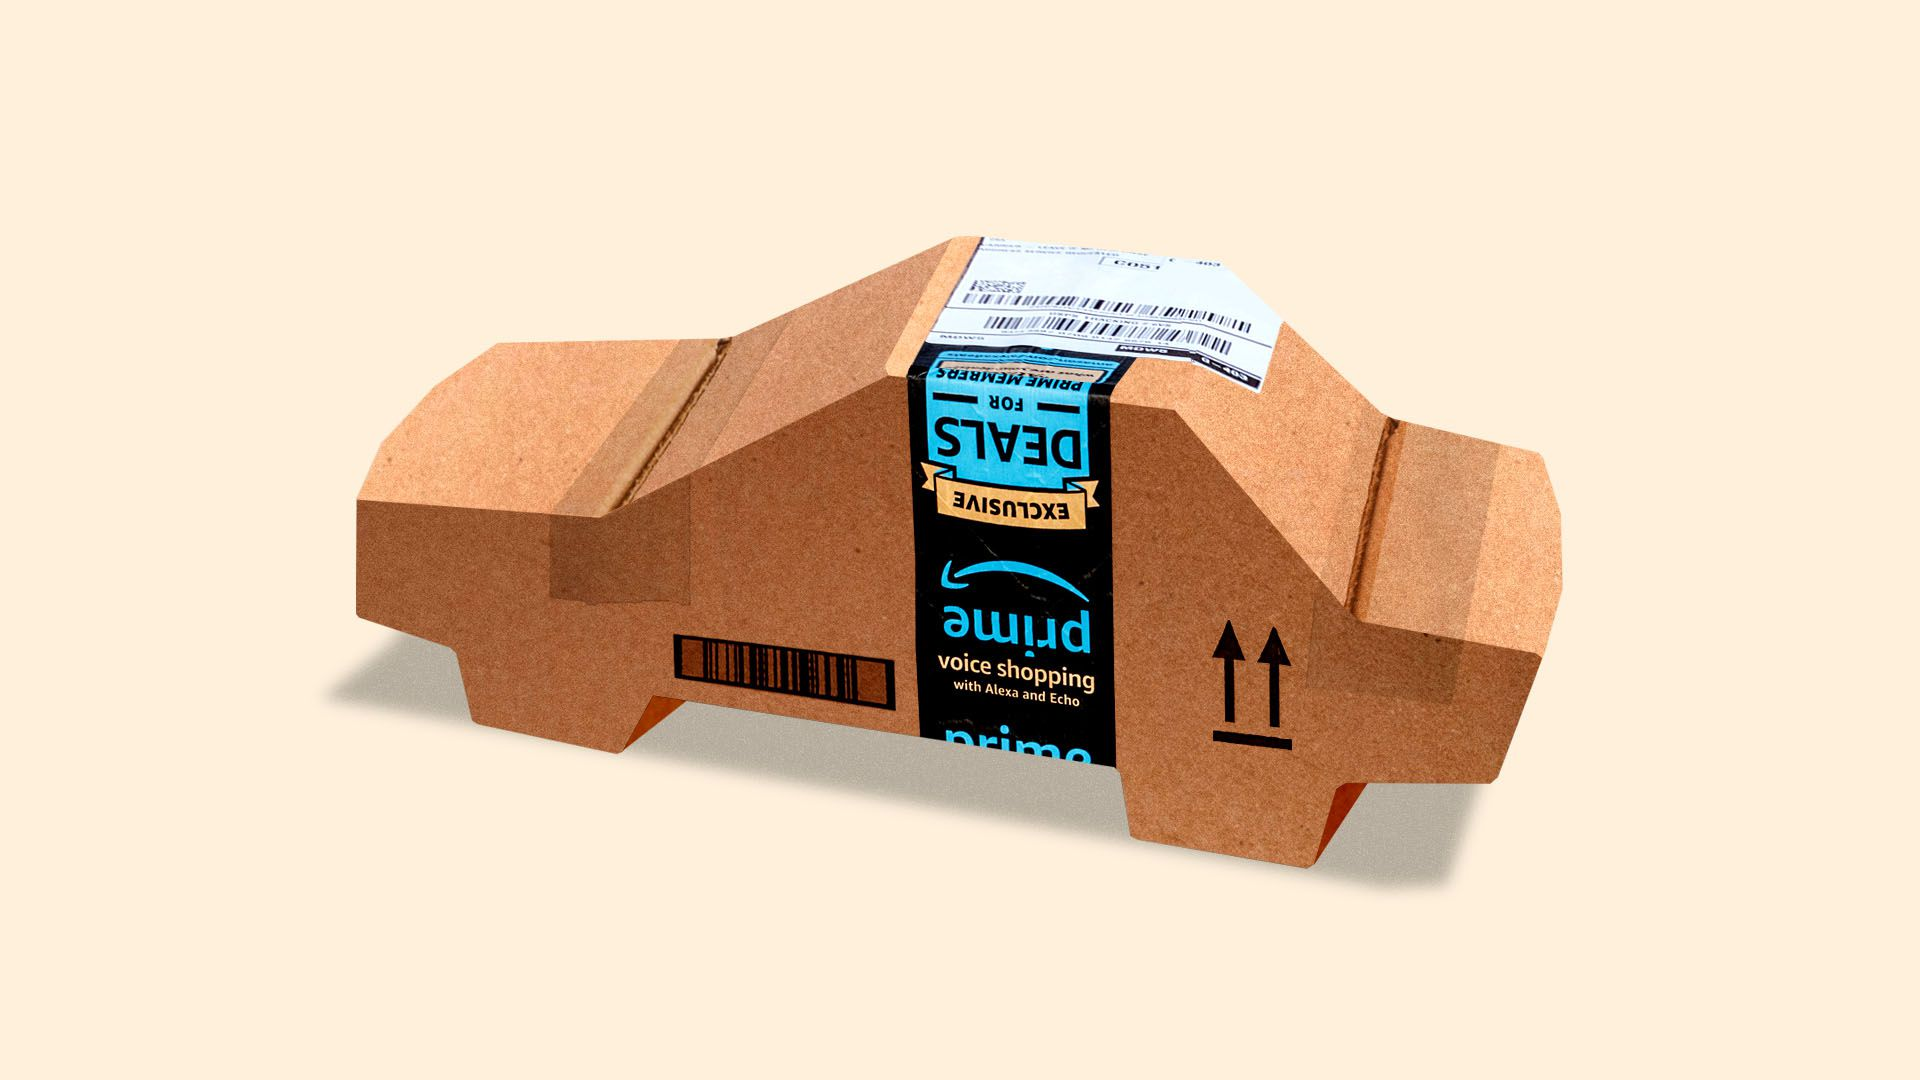 Illustration of Amazon box in the shape of a car